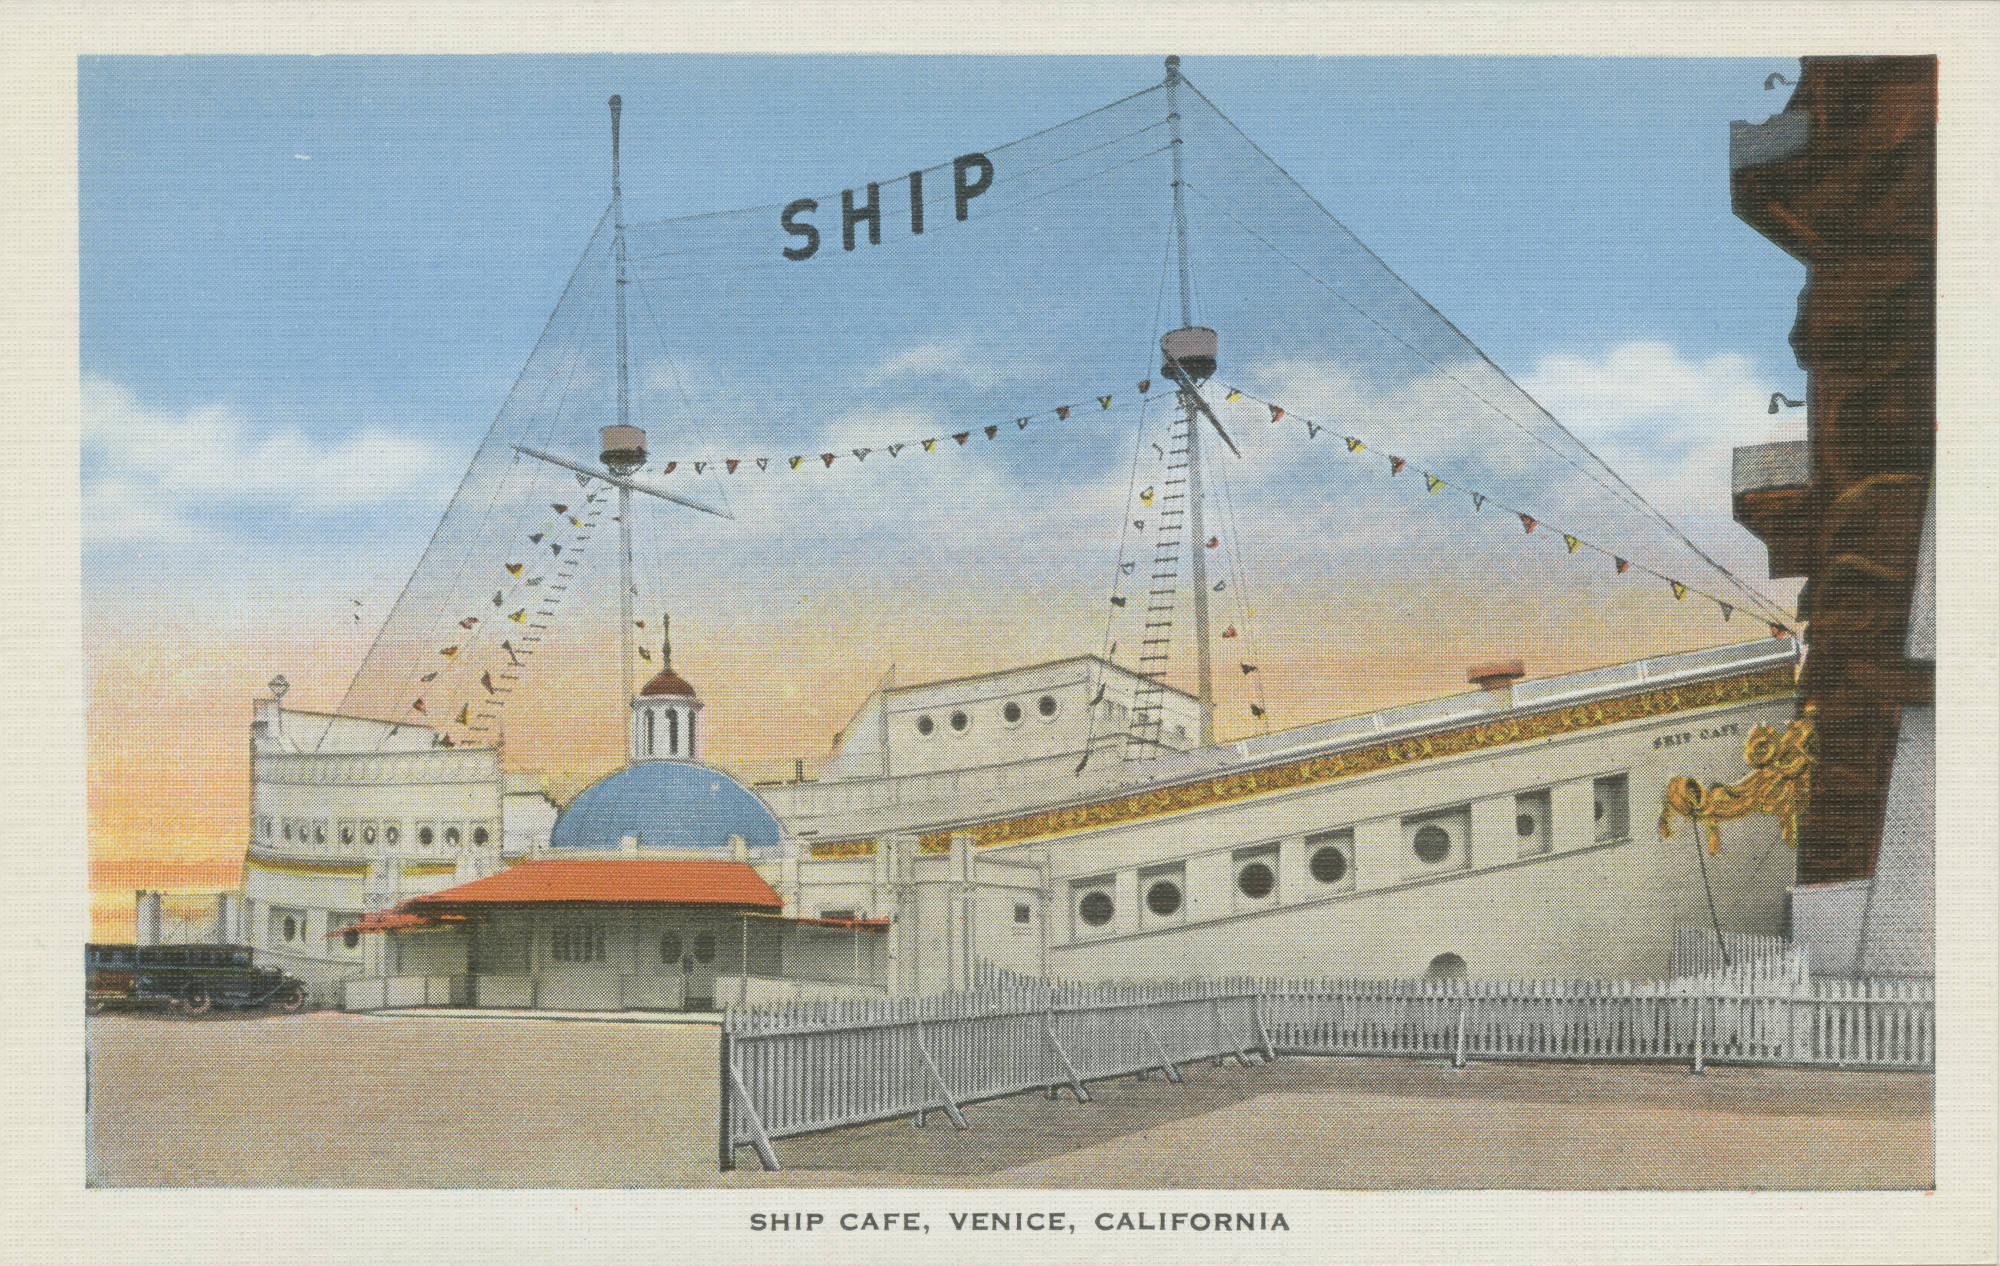 Postcard of the Ship Café